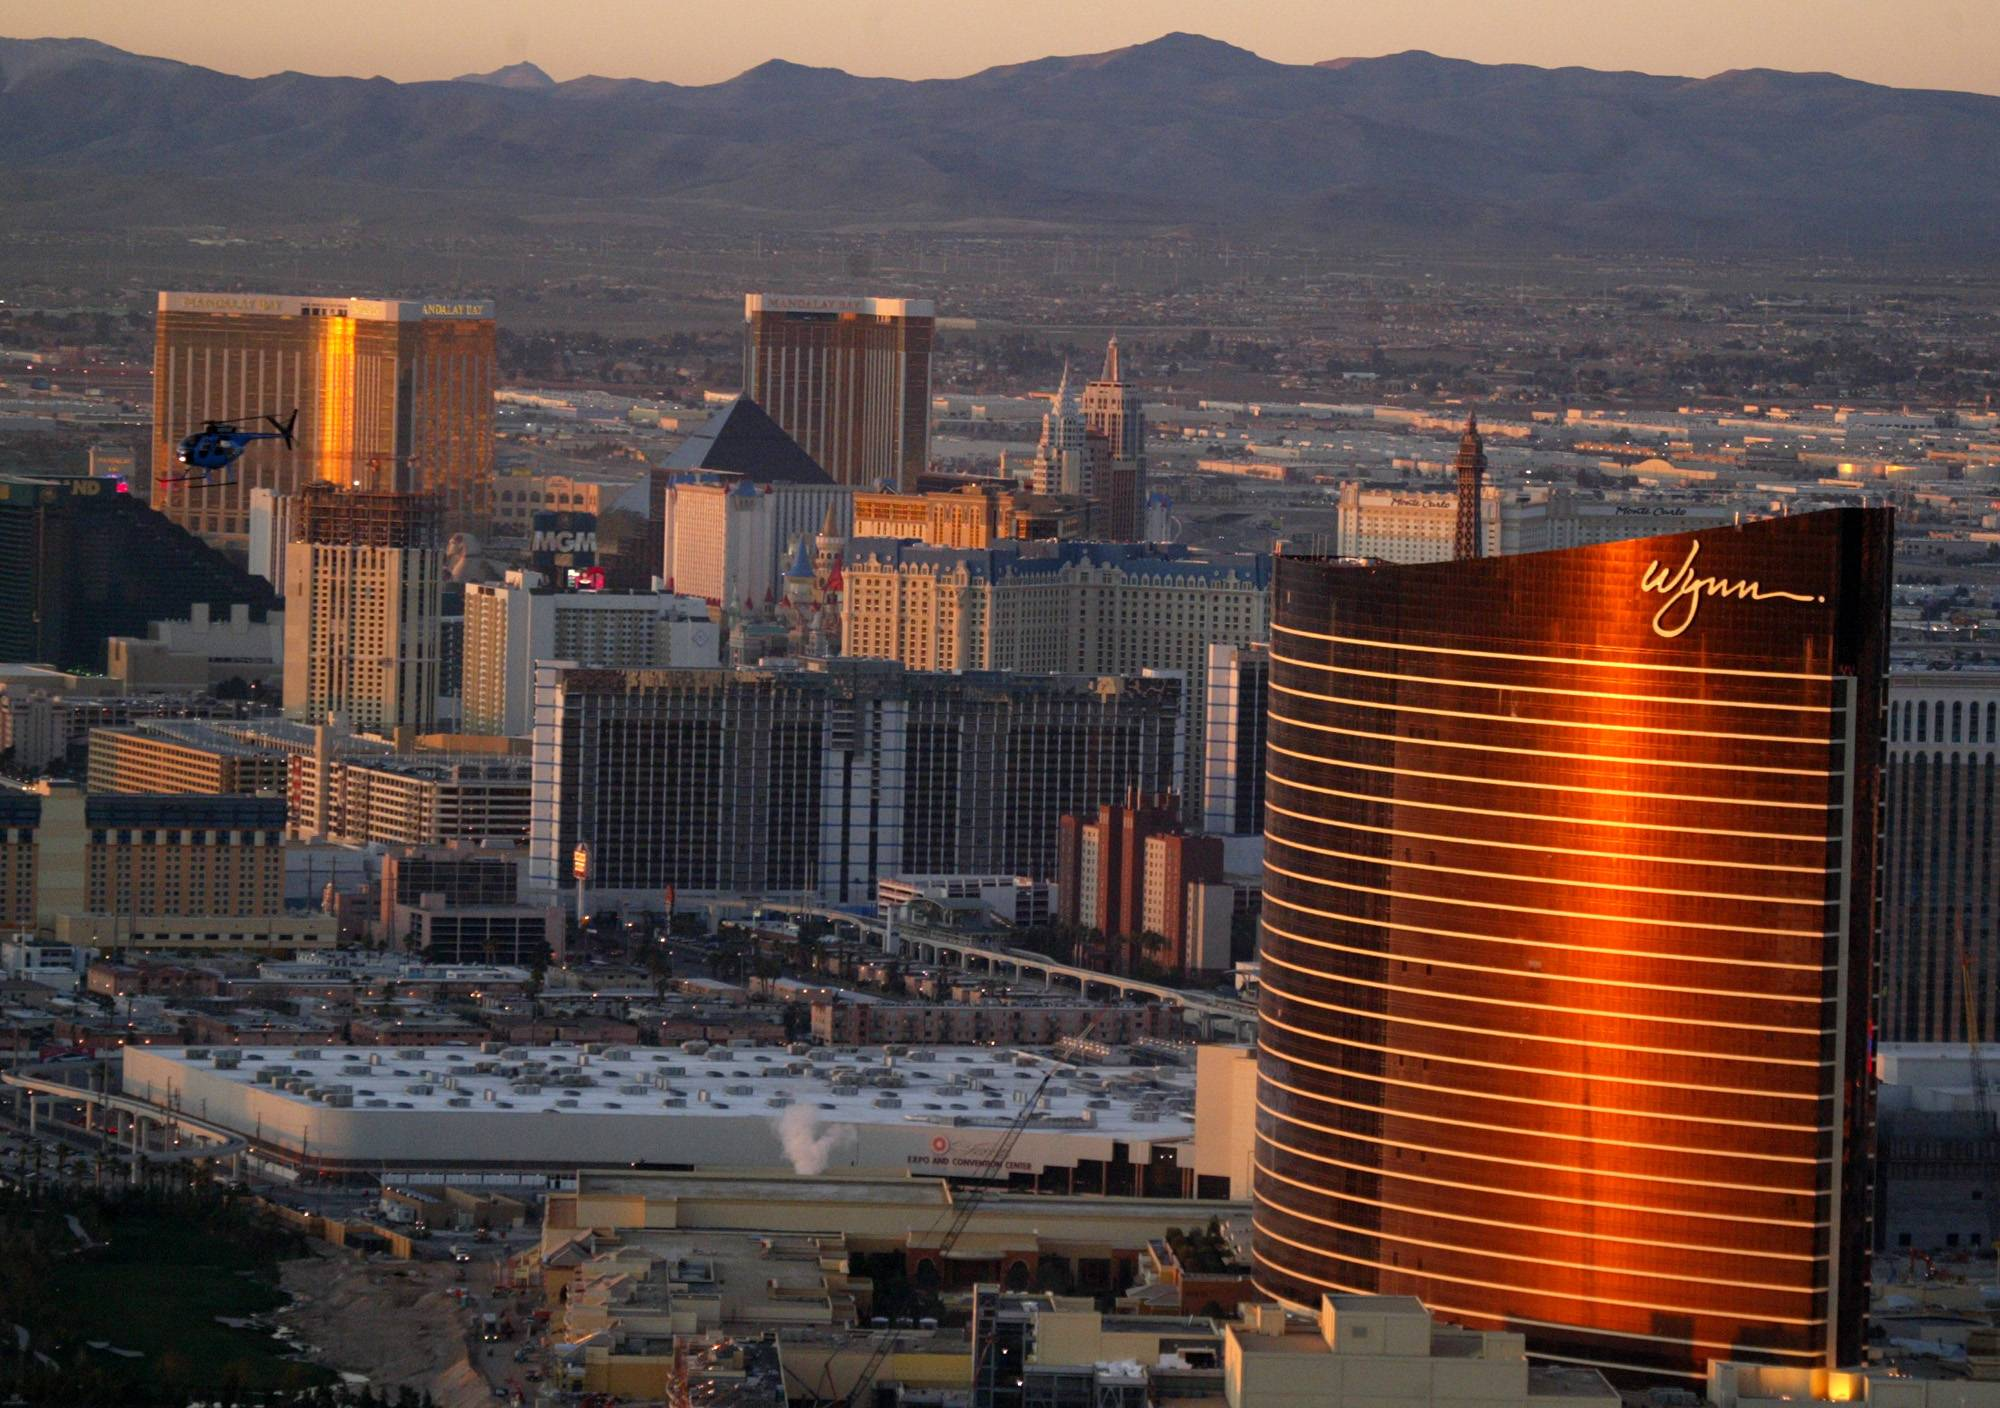 There was a time when gamblers tried to keep their trips to Las Vegas a secret. Now, visitors want loyalty points from mainstream hotel chains for the days they spend holed up in Strip casinos.